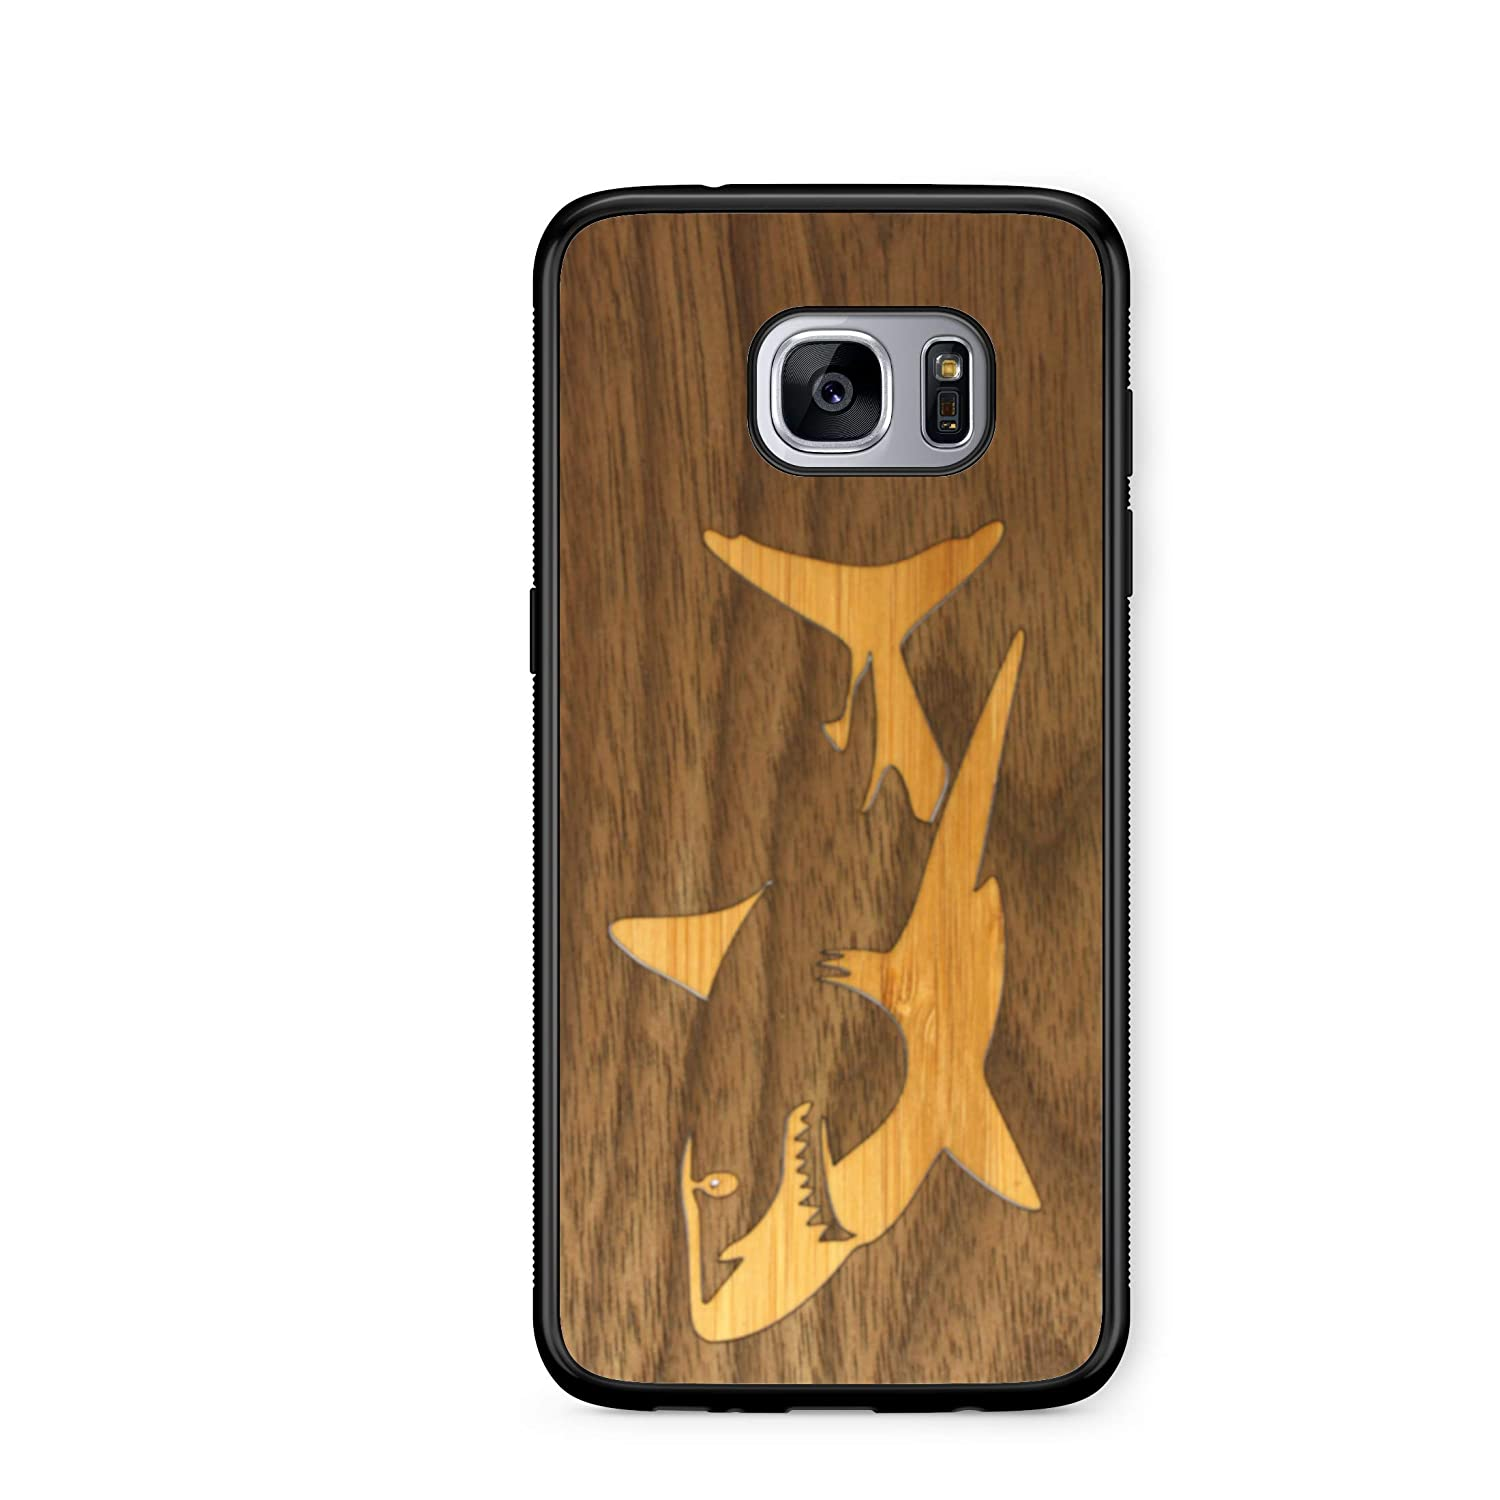 Wooden Phone Case Bamboo Shark In Black Walnut Ocean Compatible With Galaxy S7 Edge Samsung Galaxy S7 Edge